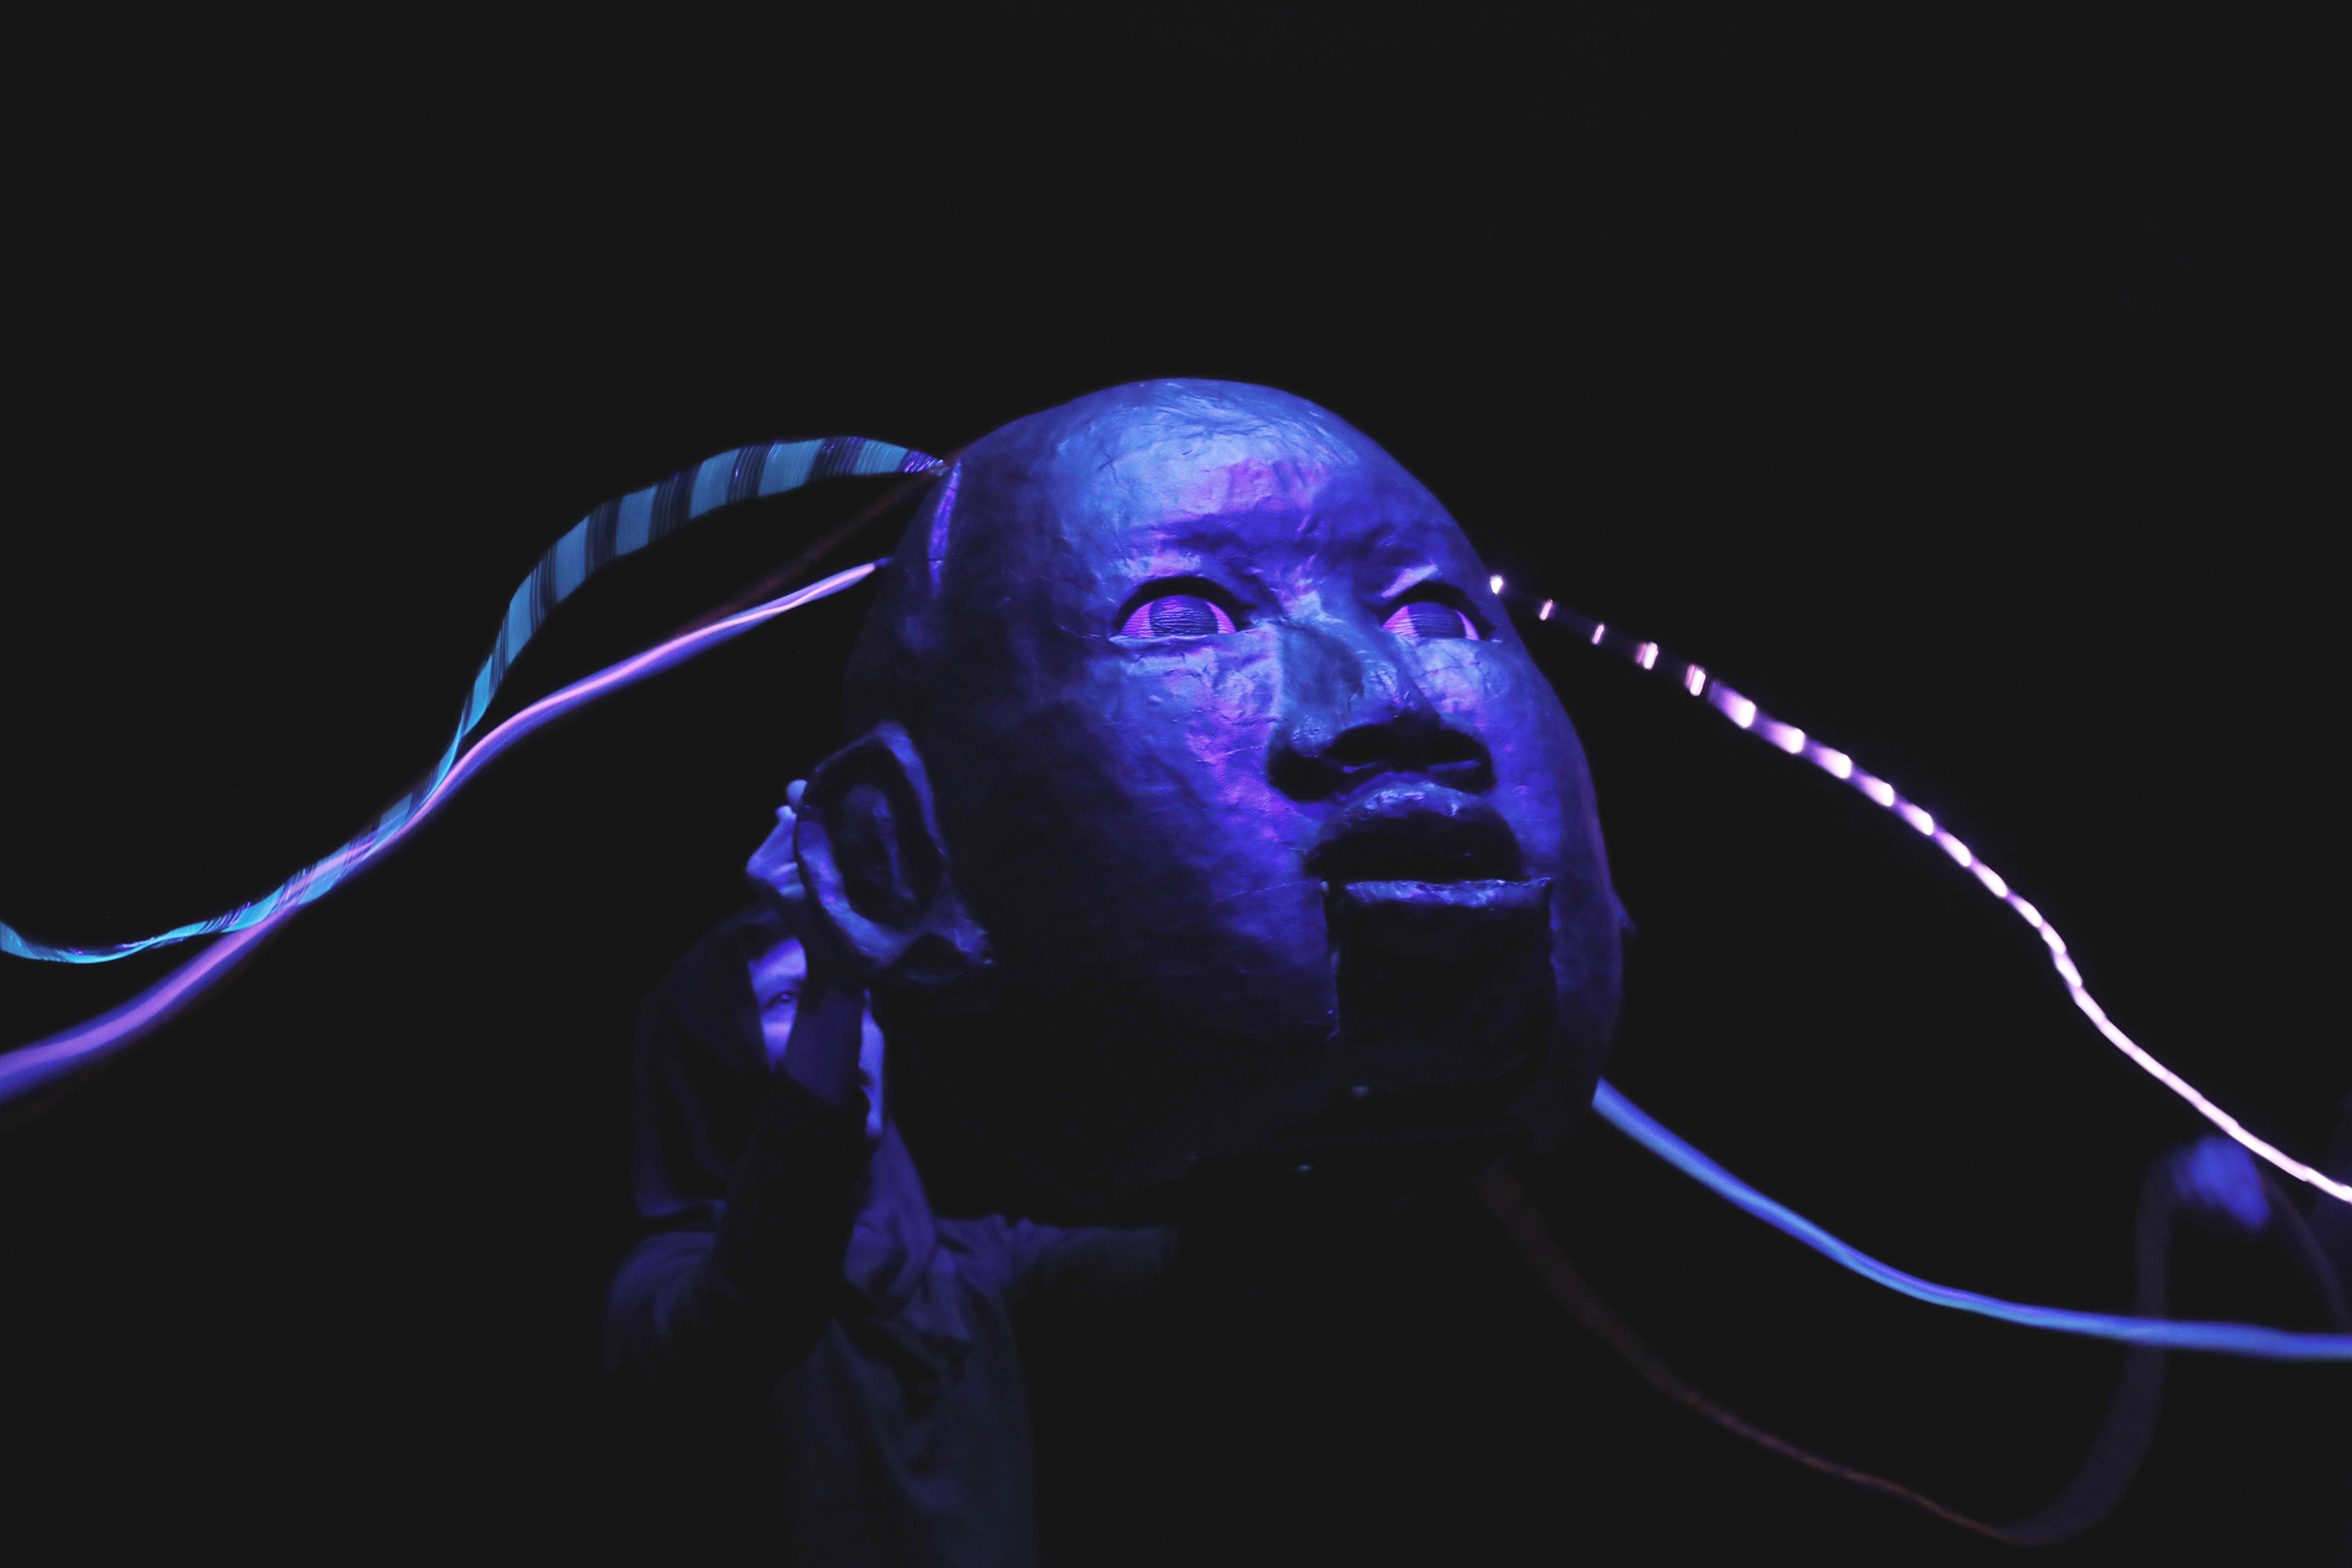 a blue face with wires coming out of the head